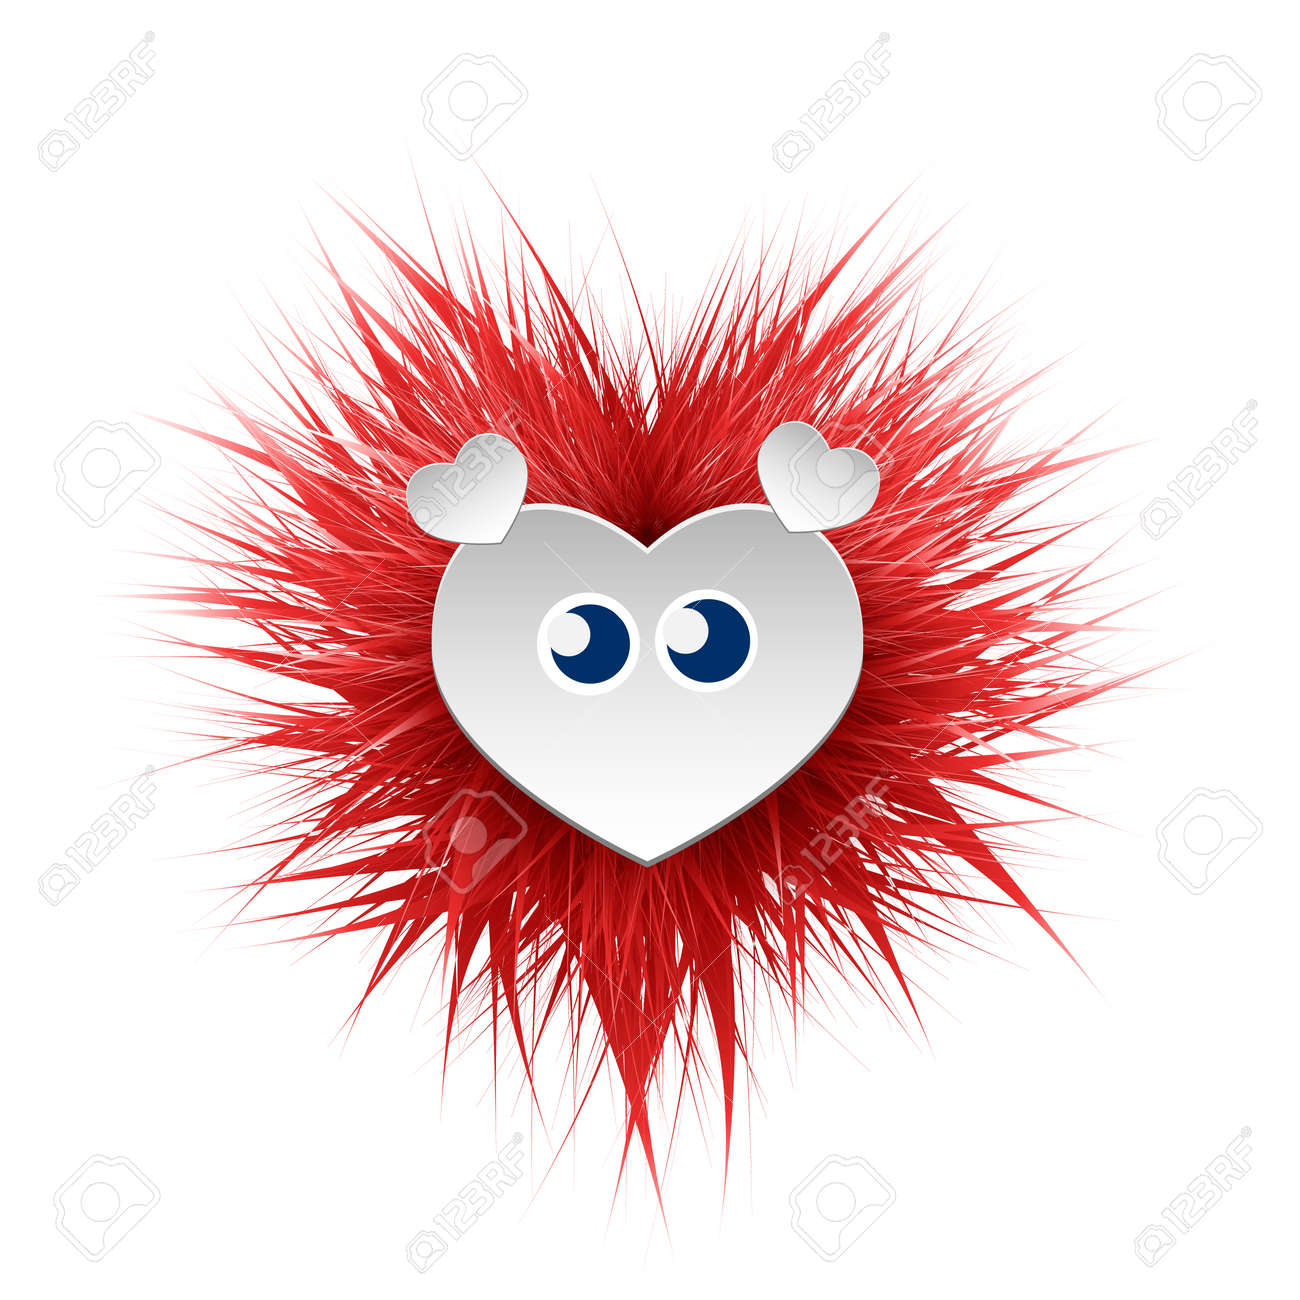 Shaggy Bright Fluffy Monster With Eyes And Ears Can Be Used Royalty Free Cliparts Vectors And Stock Illustration Image 92758467